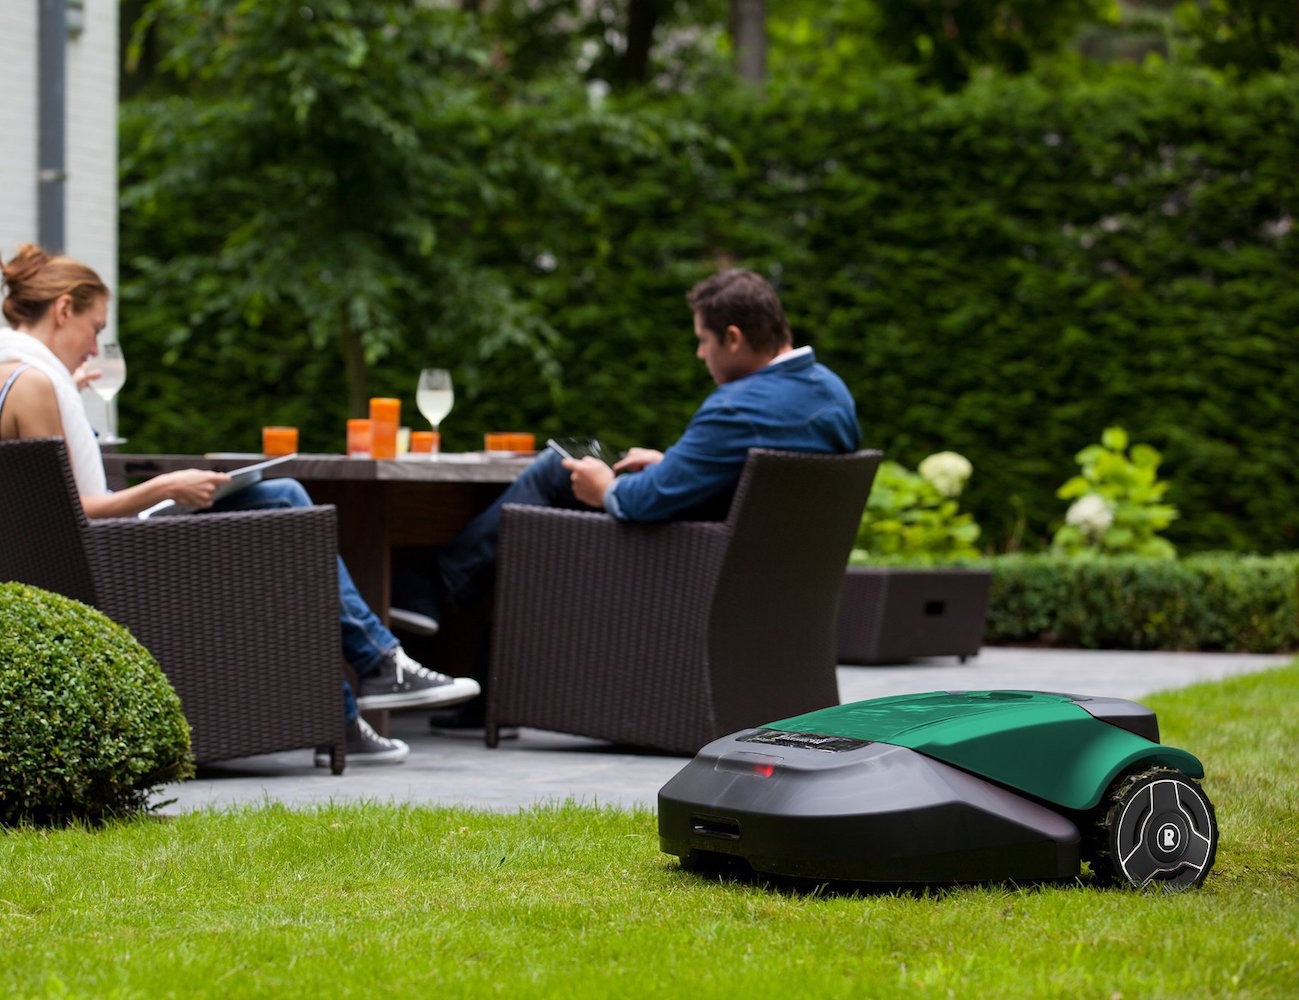 Robomow Robotic Lawn Mower